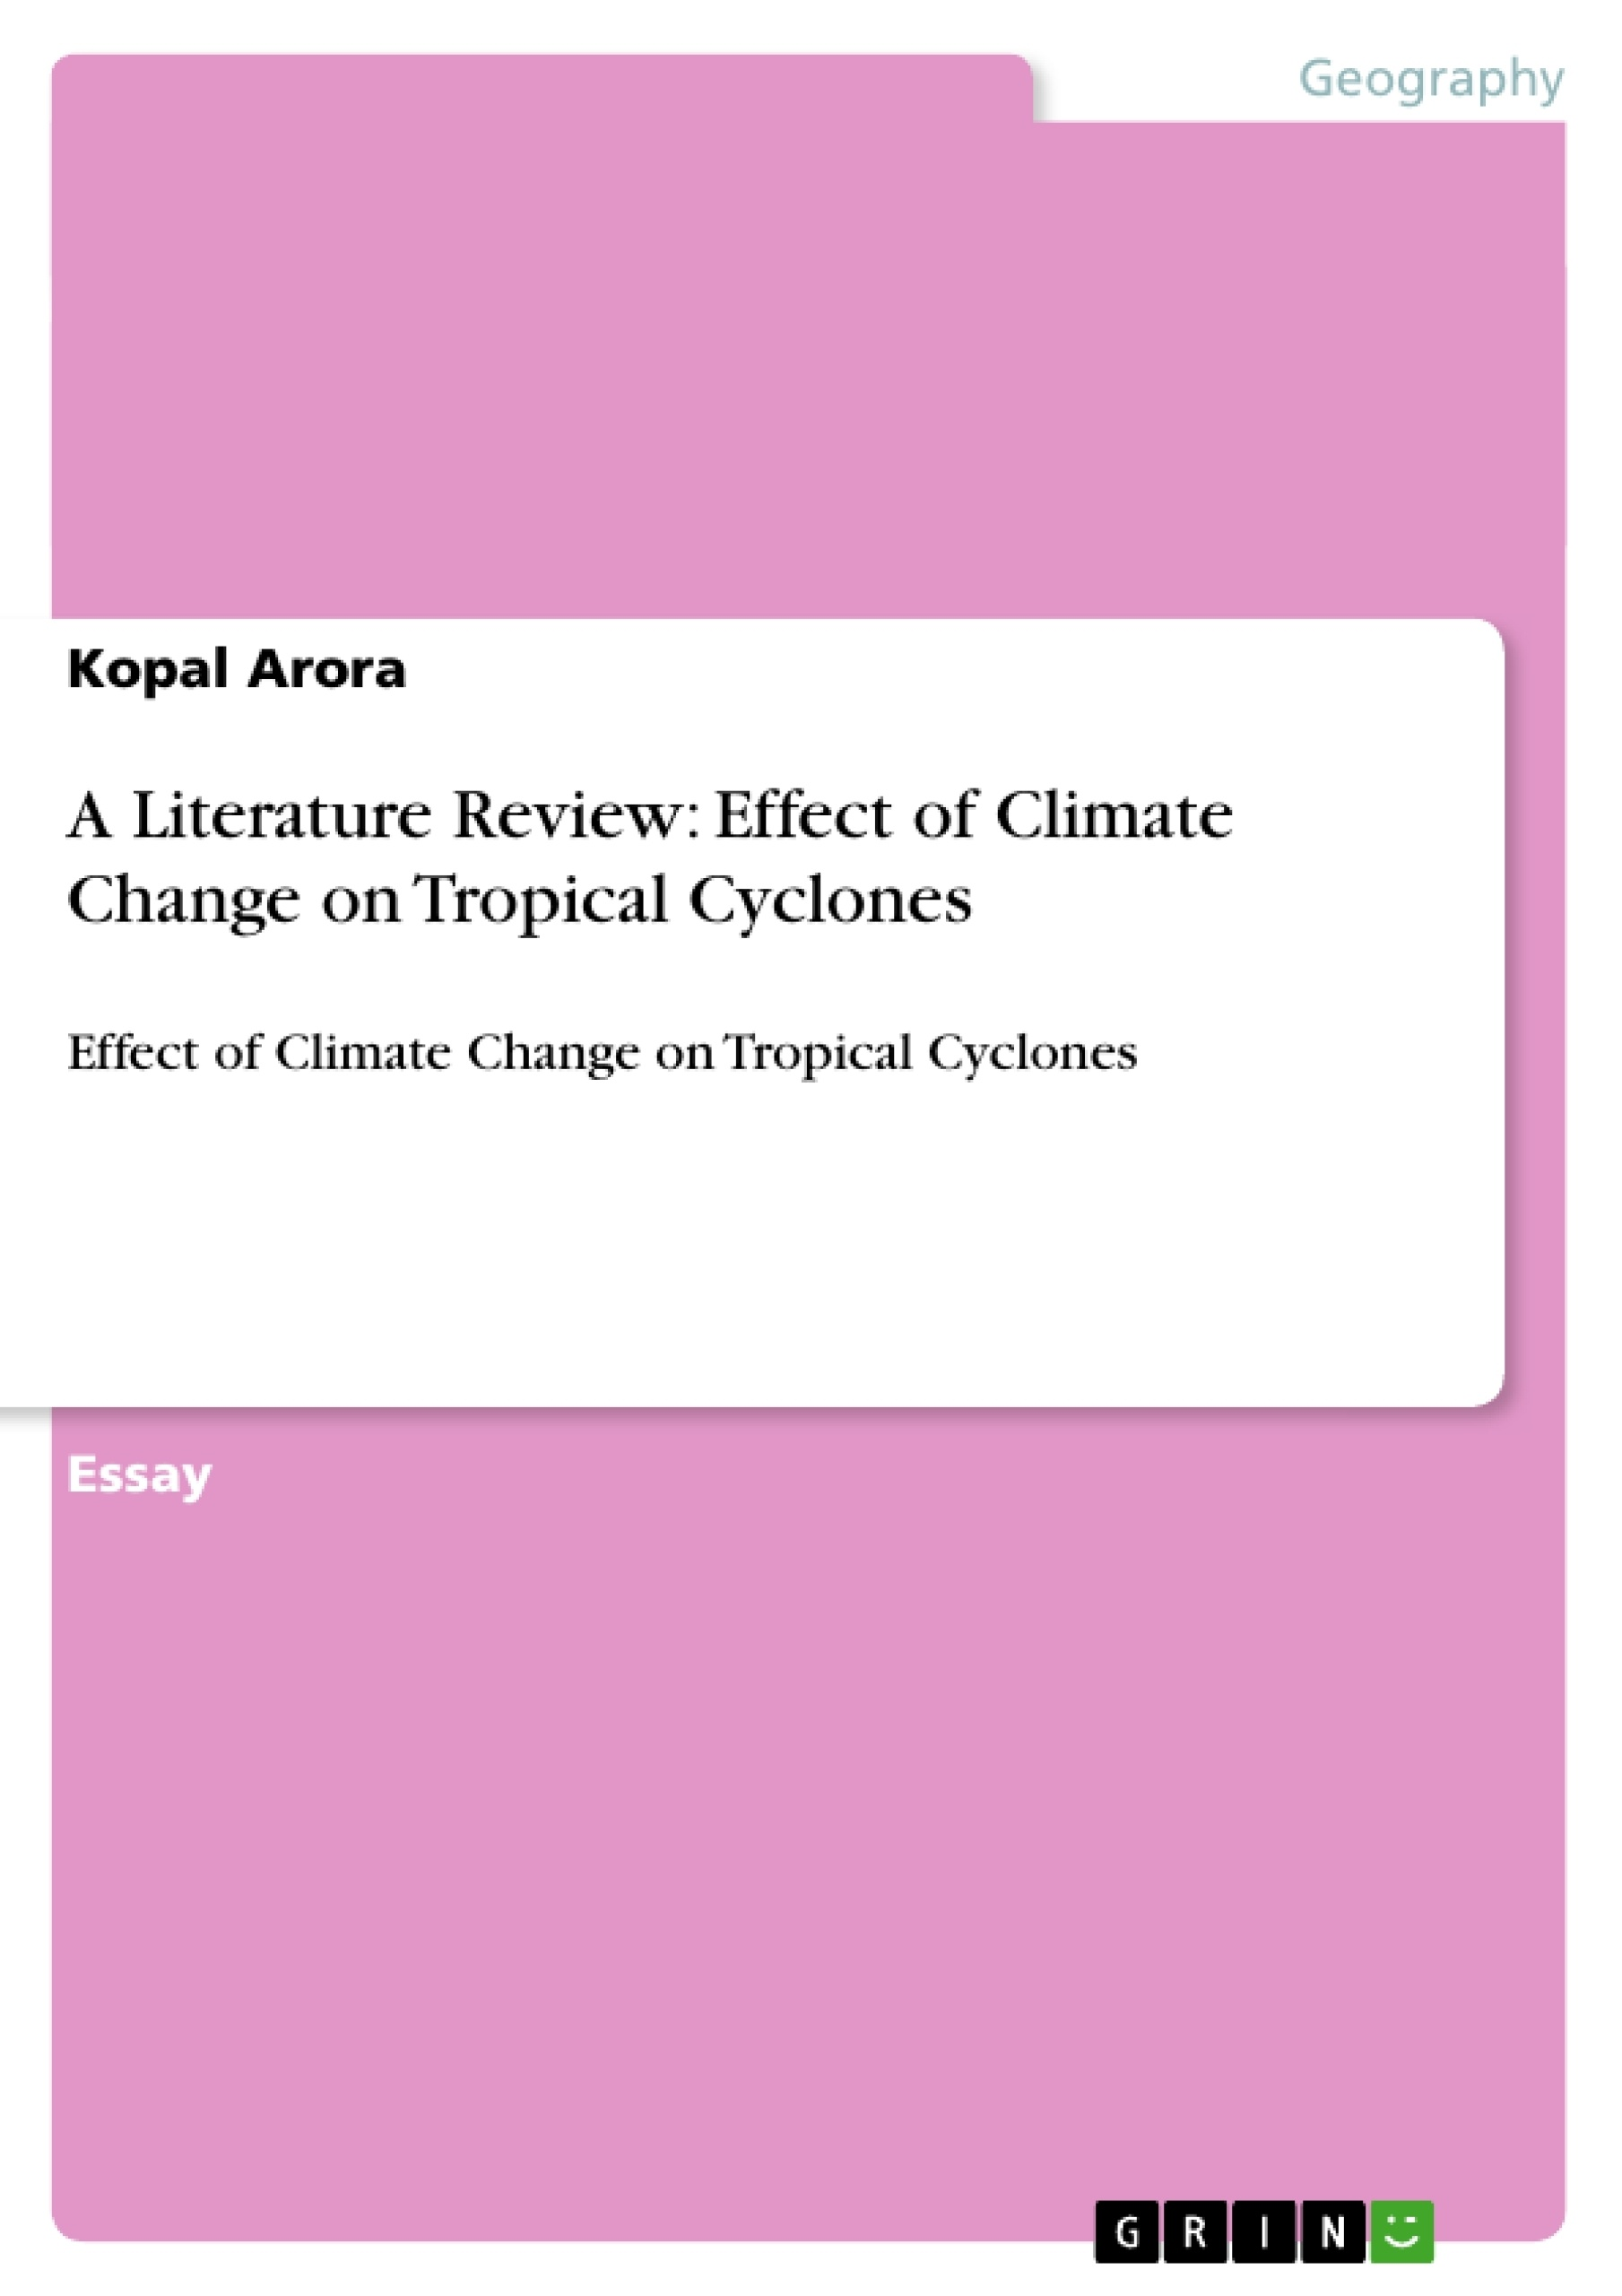 tropical cyclones and climate change essay The database we have on historical hurricanes does not extend far enough into the past and is not of high enough quality to make many judgements on how human-caused climate change may be affecting these great storms a landmark 2010 review paper, tropical cyclones and climate change, authored by ten top.